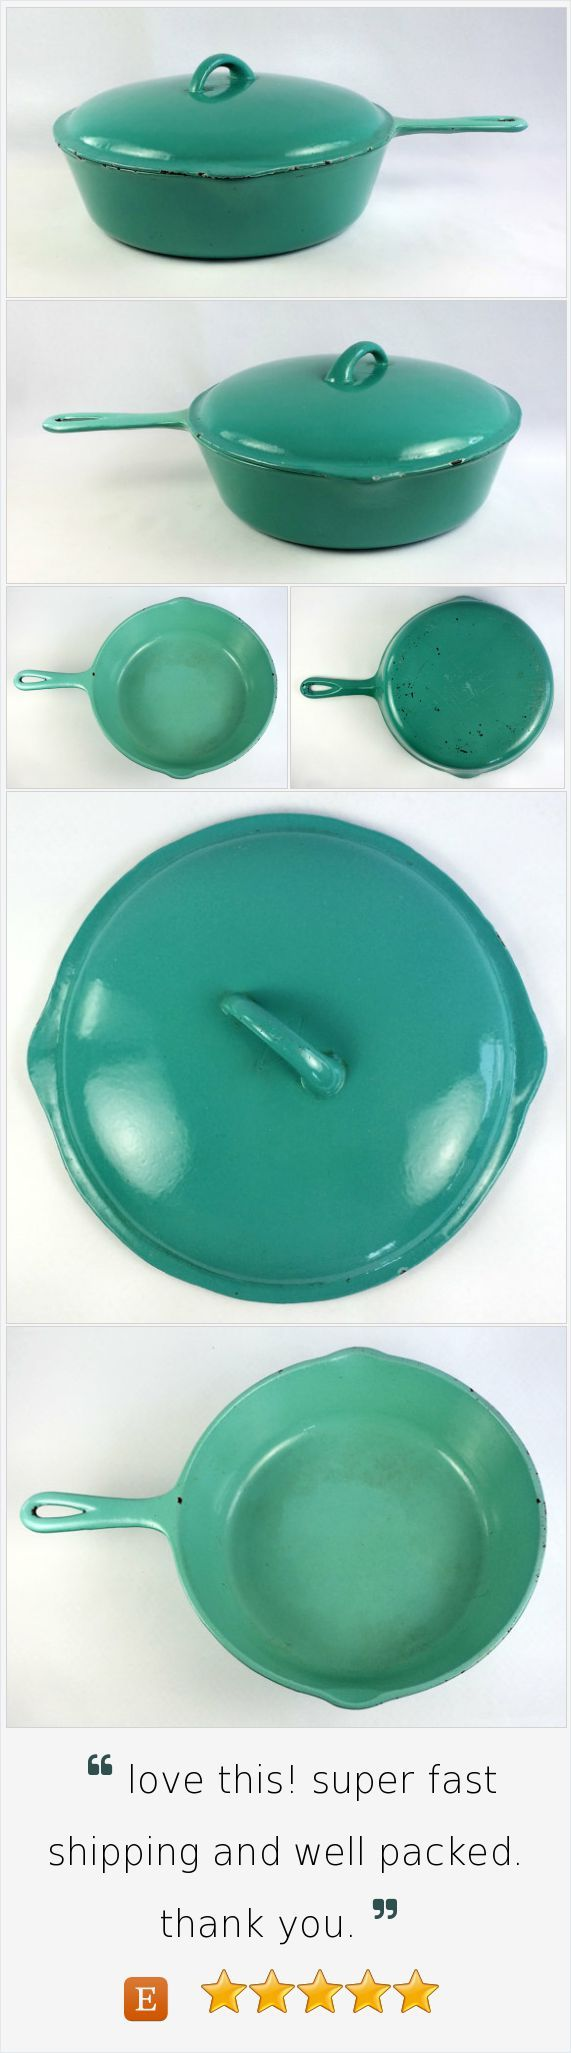 Enameled Heavy Cast Iron 10 in Covered Skillet Frying Pan Seafoam Vintage Americana Rustic County Chic